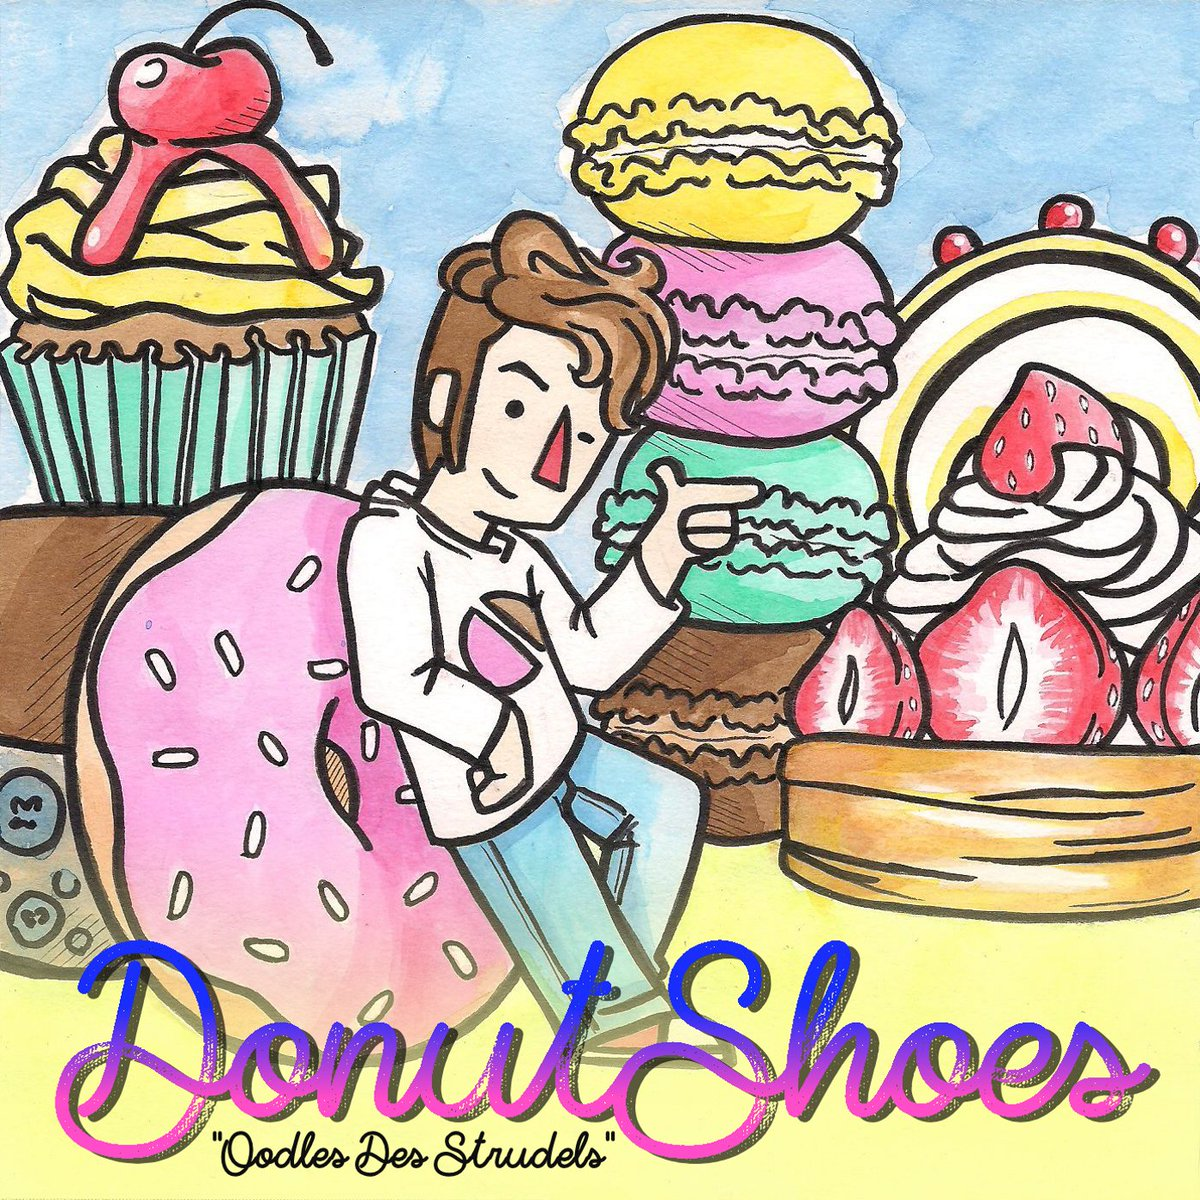 A brand new ska-inspired EP from @DonutShoes coming early next week!    https:// soundcloud.com/cheapbeatsmusi c/donutshoes-oodles-des-strudels-cb080 &nbsp; …  #chiptune <br>http://pic.twitter.com/0em5cBy28h